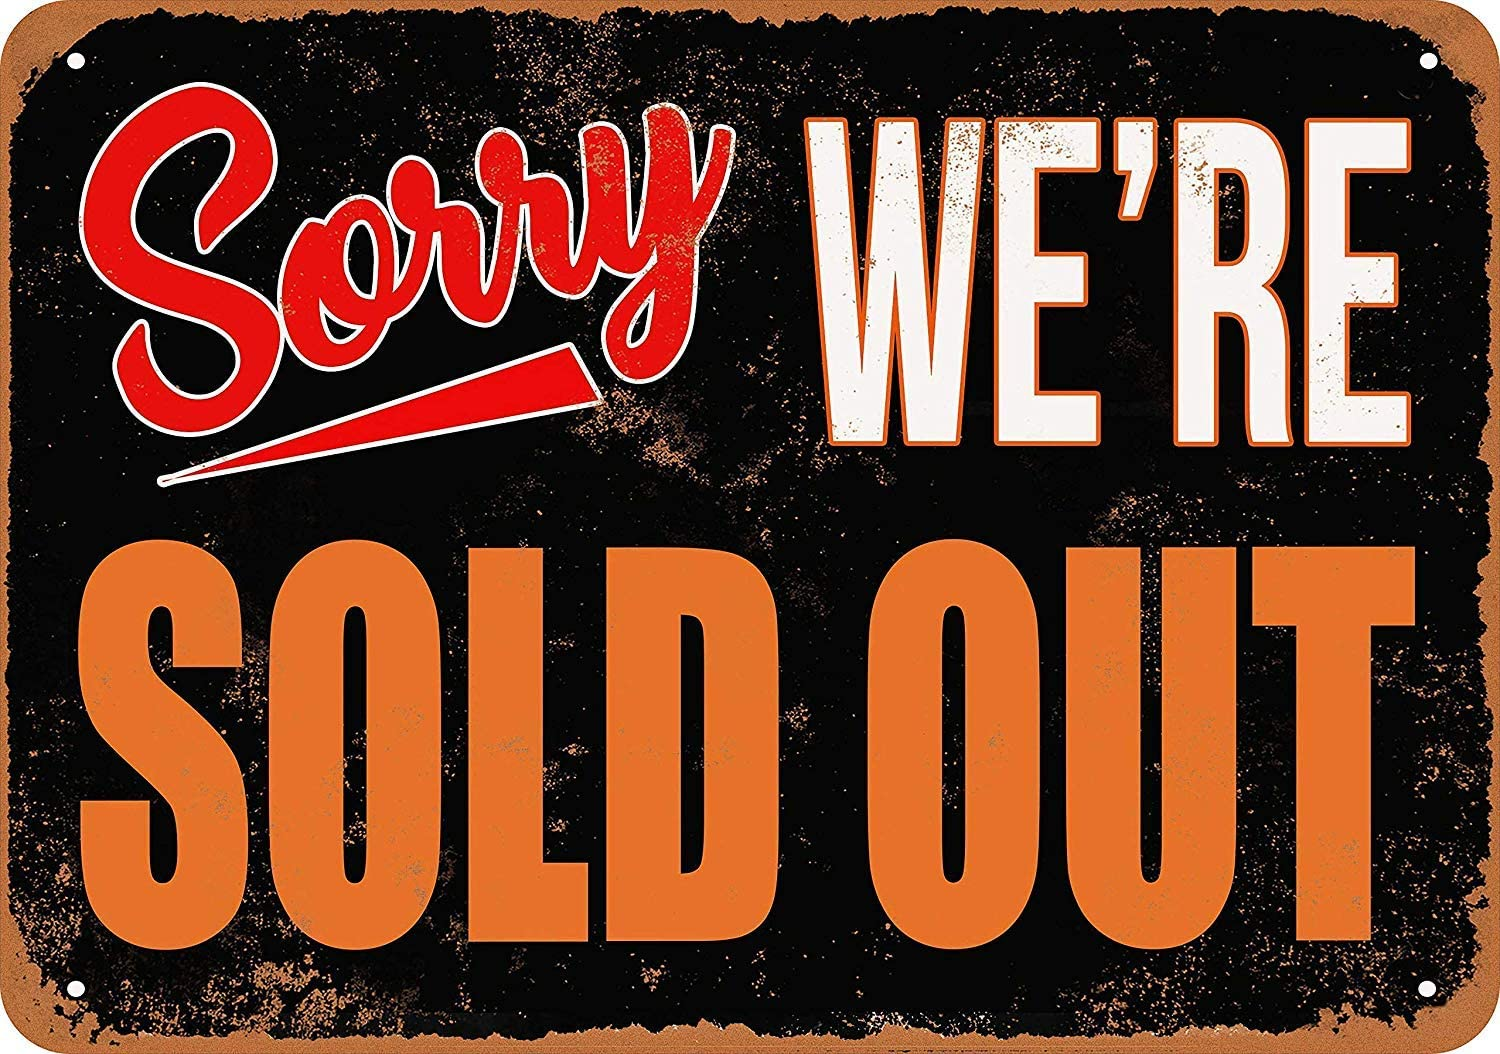 Today's wrestling match between West Ashley and Berkeley is SOLD OUT